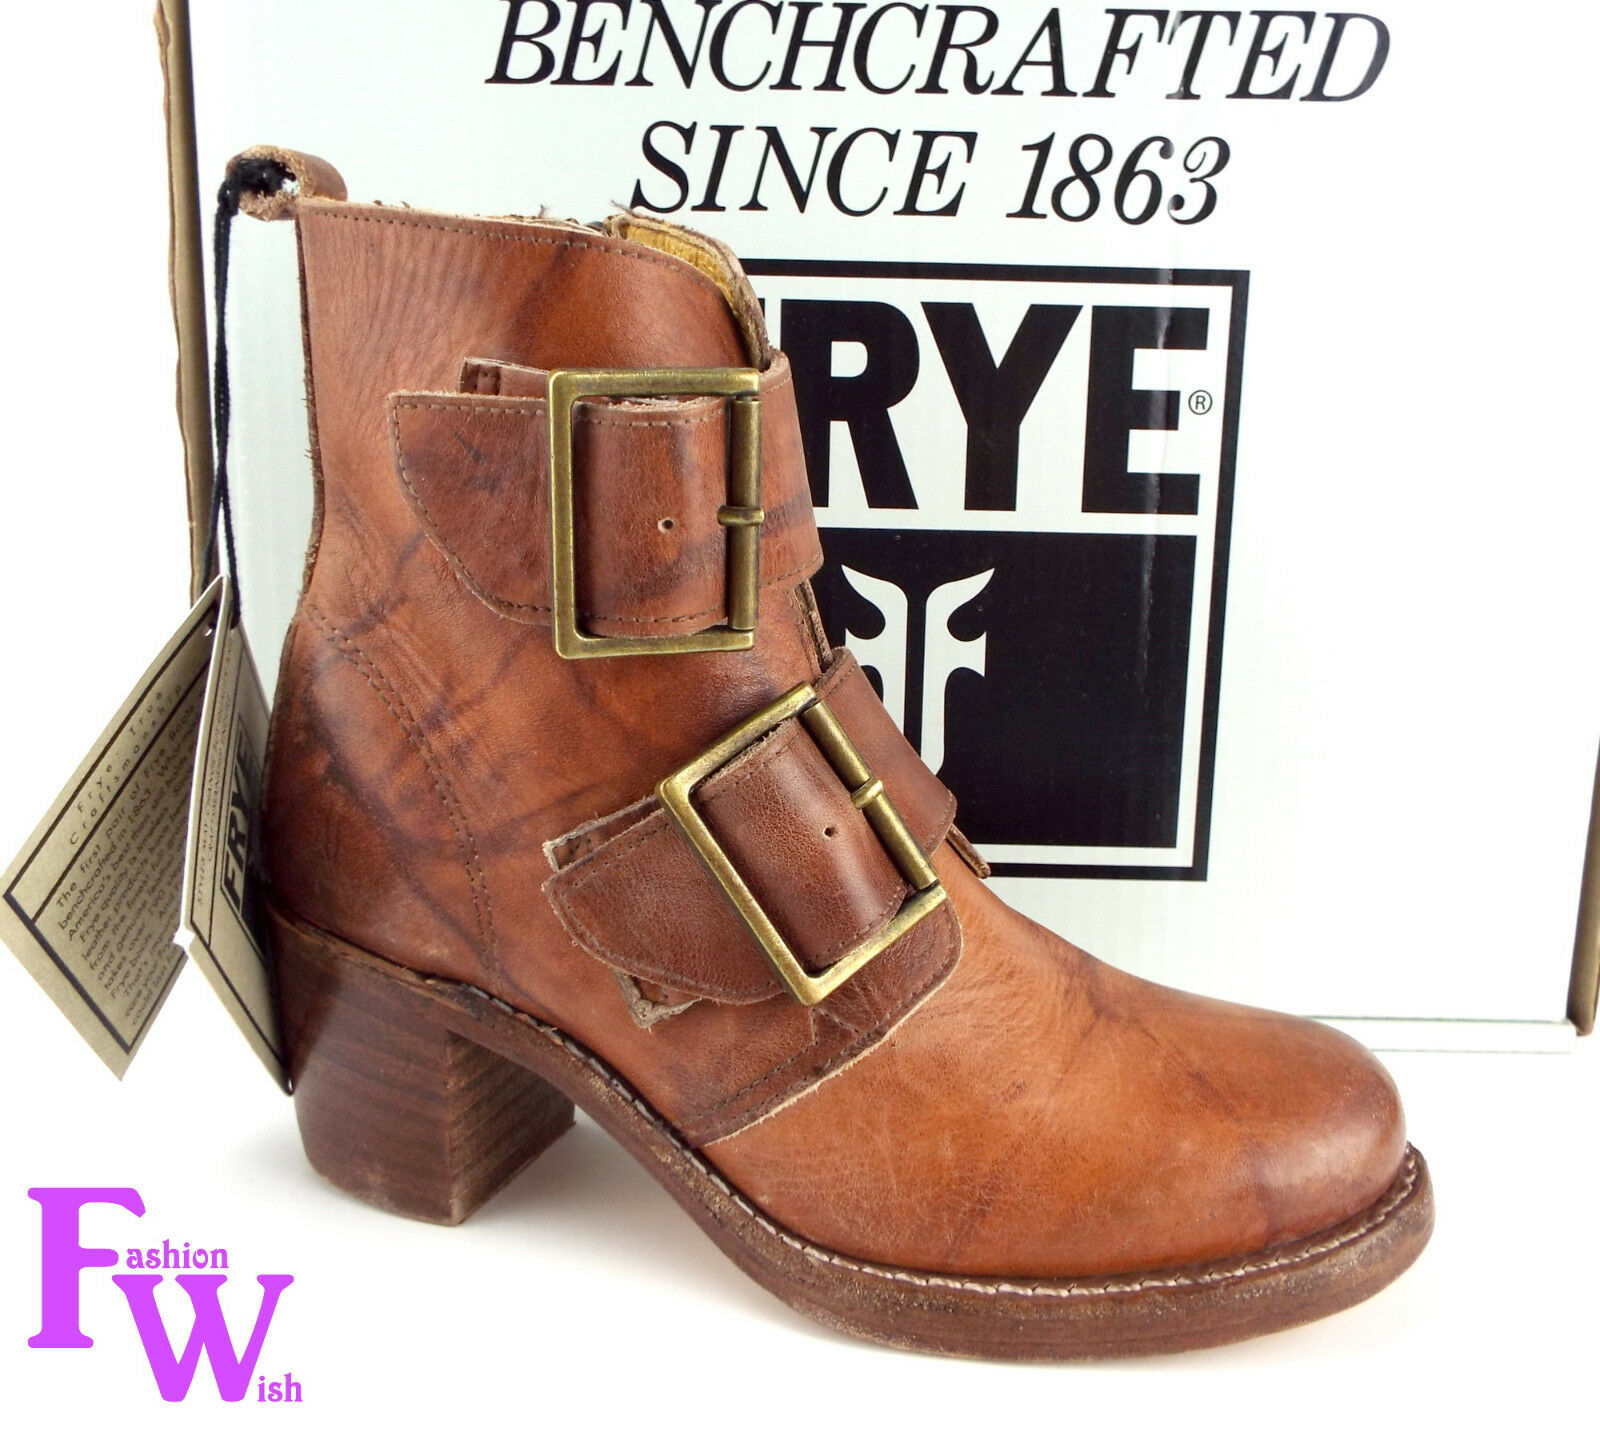 New FRYE Size 6 SABRINA Double Buckle Saddle Leather Leather Leather Stone Washed Ankle Boots 2146b8